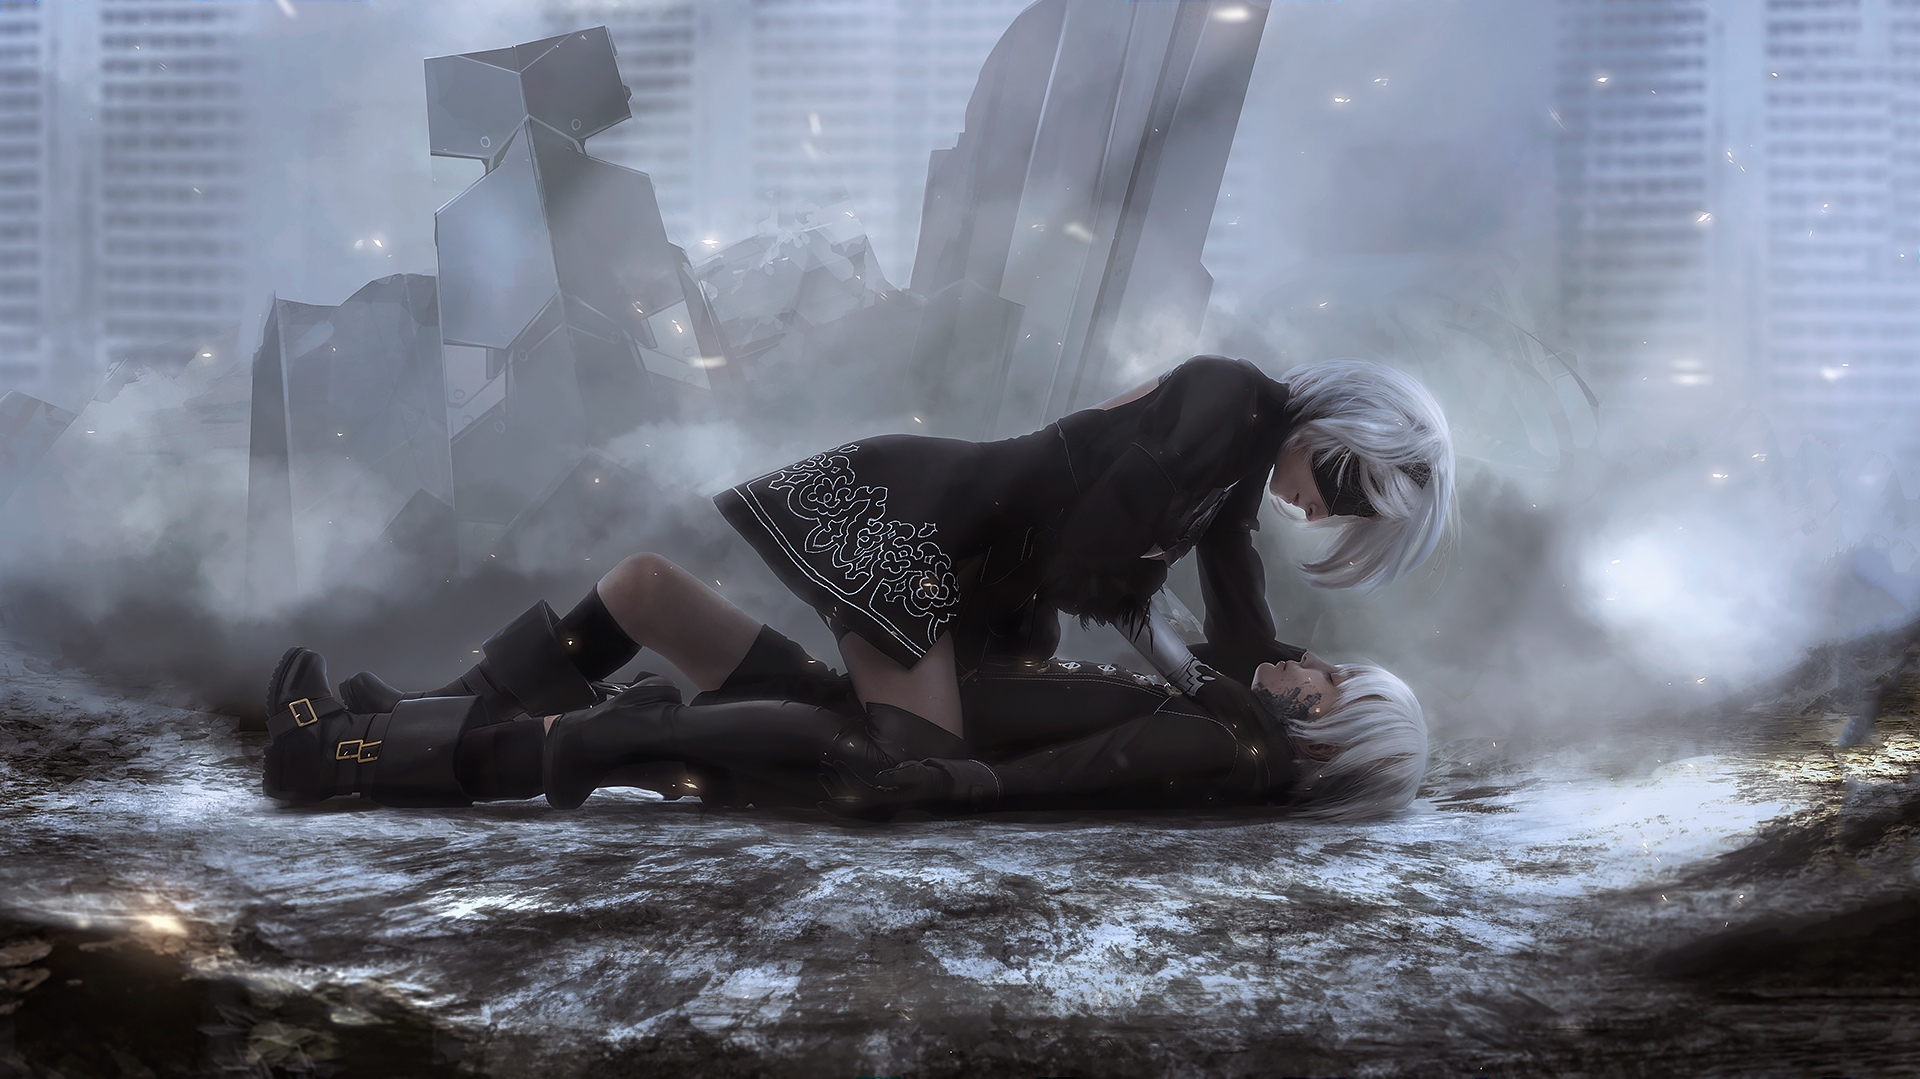 Nier Automata Cute Wallpaper Android Nier Automata 2b And 9s Art Hd Games 4k Wallpapers